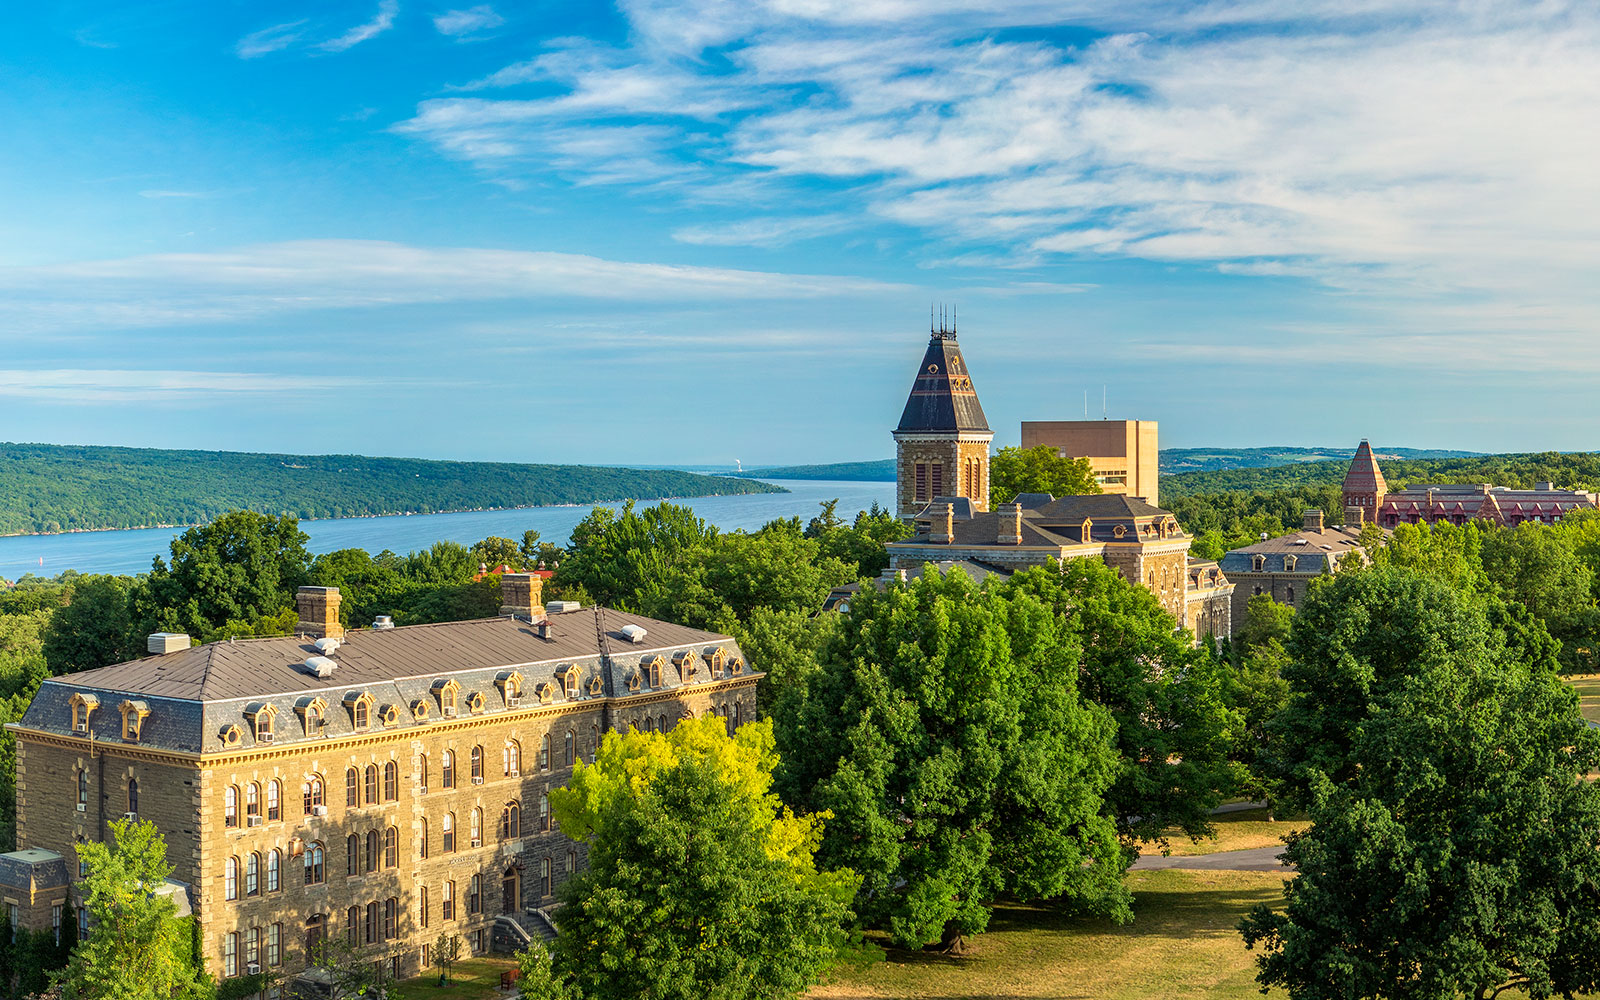 cornell-university-ithaca-ny-top.jpg